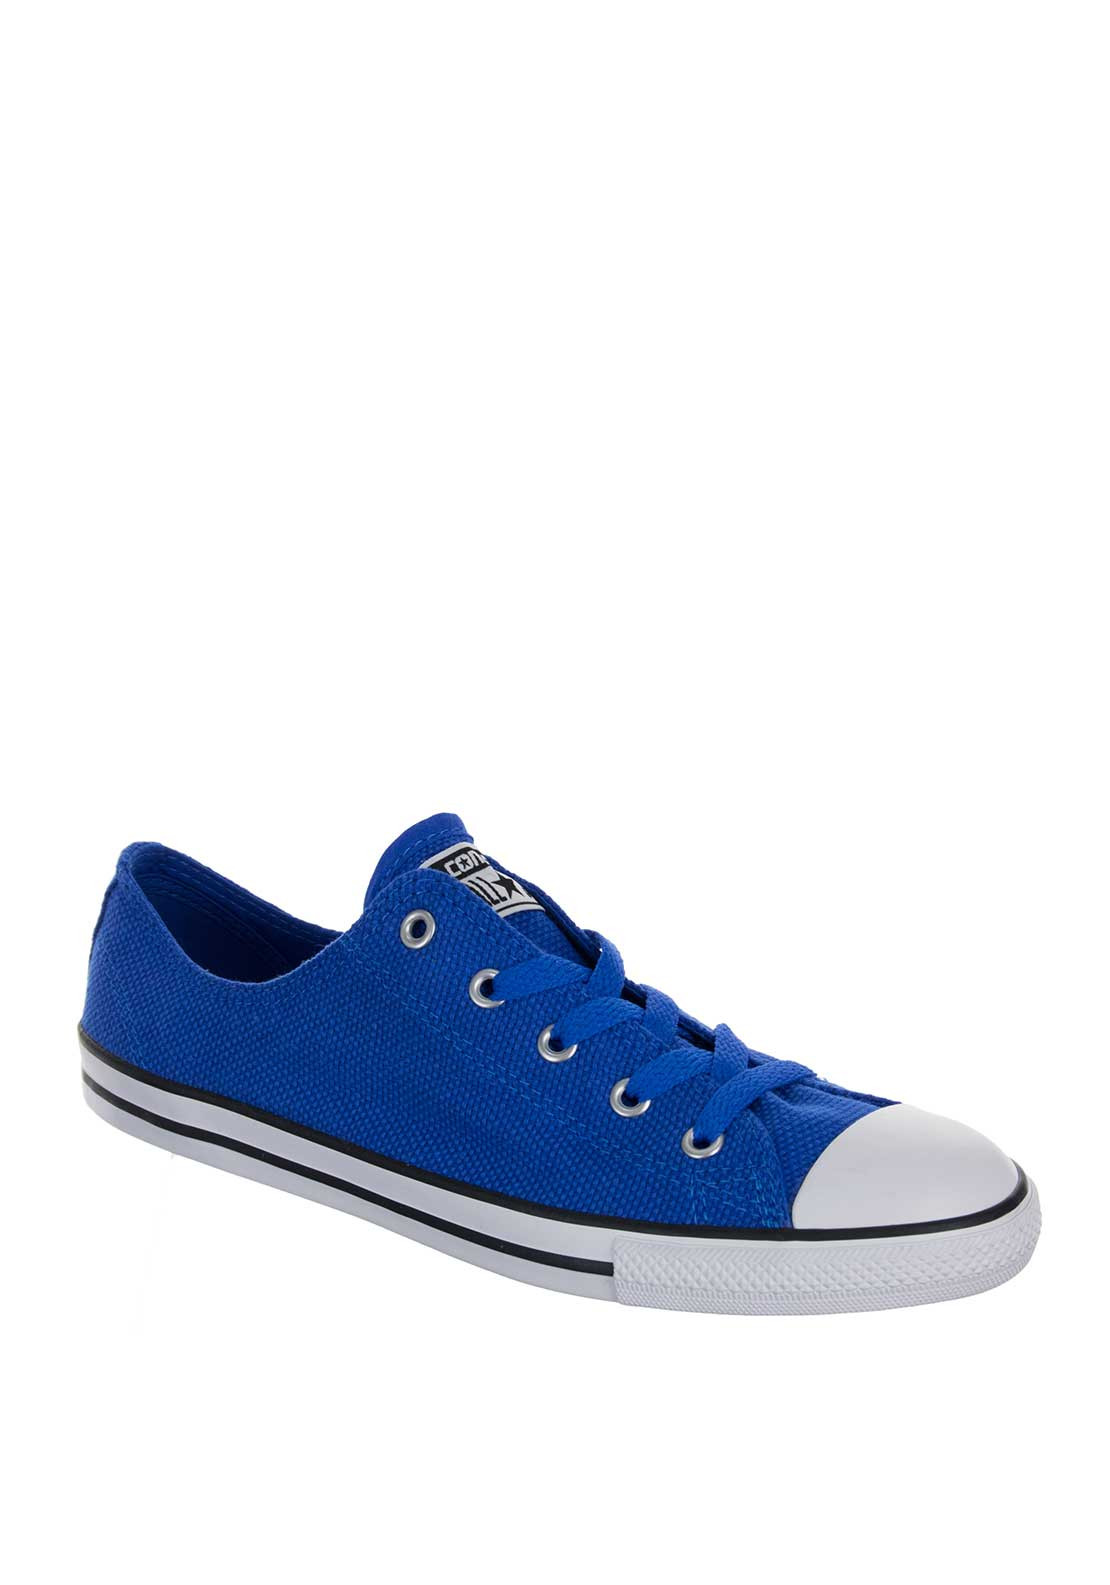 Converse Womens All Star Trainers, Blue